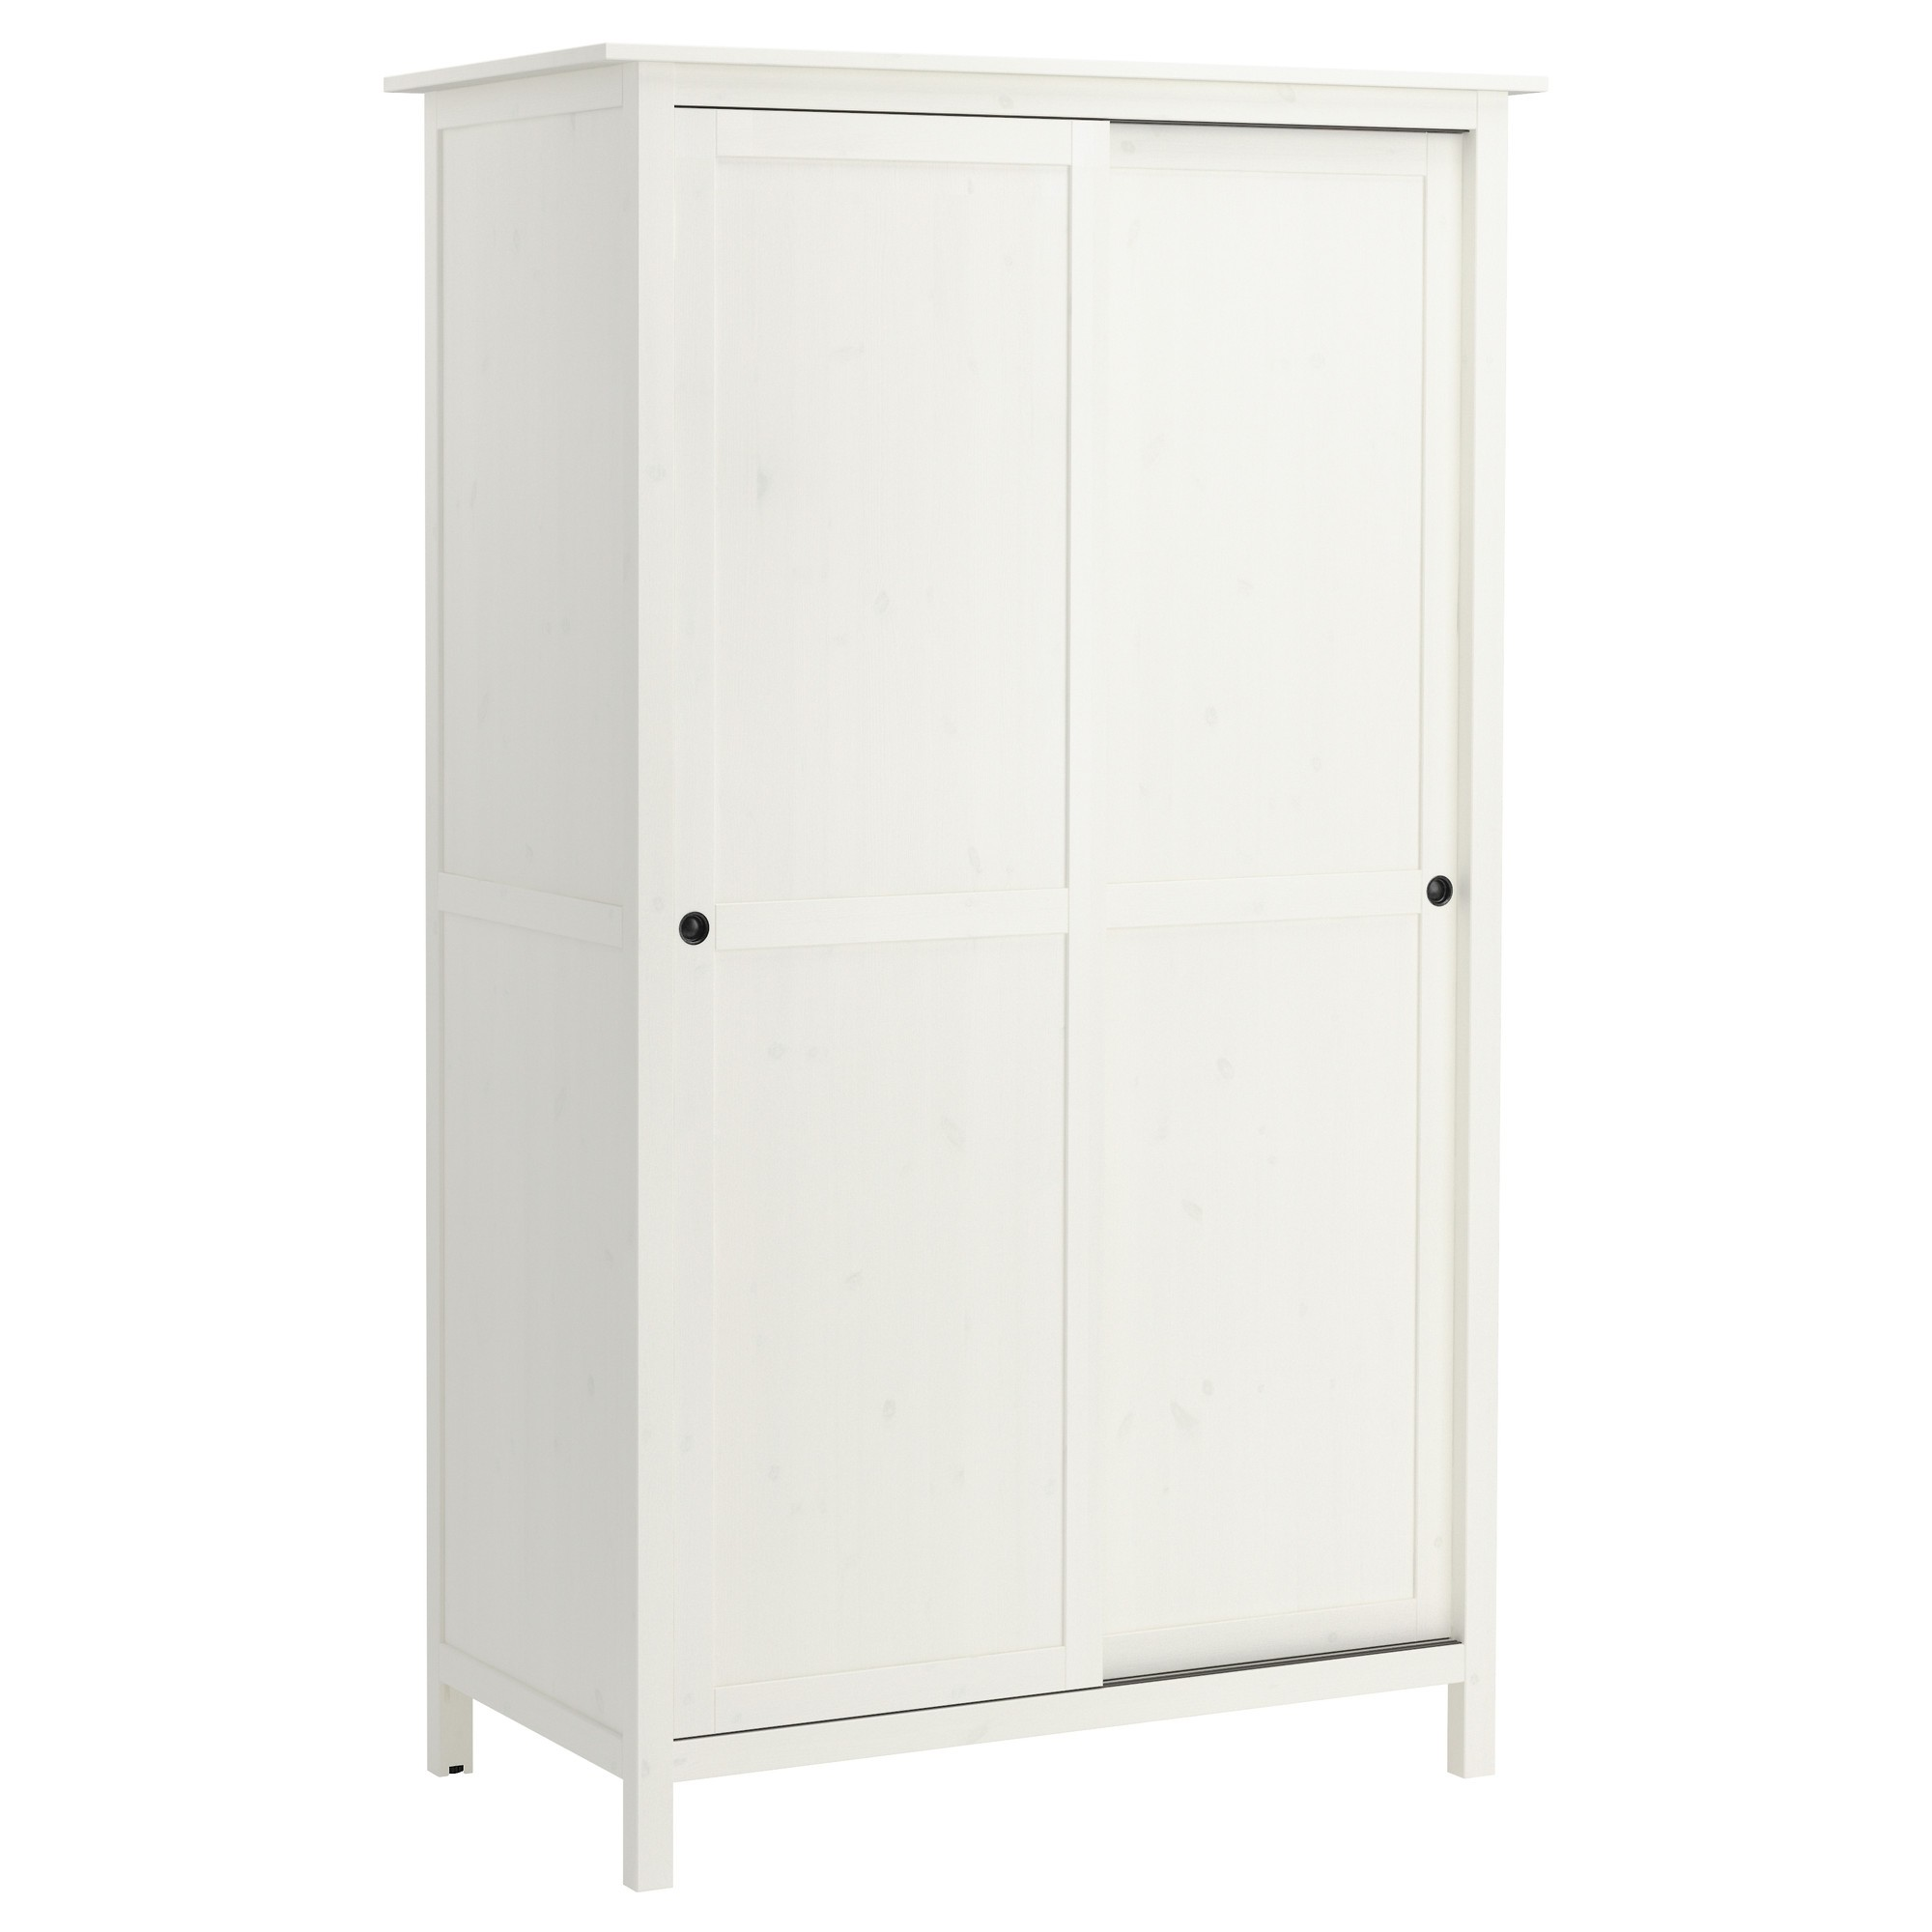 porte placard battant ikea ikea armoire dressing ikea. Black Bedroom Furniture Sets. Home Design Ideas